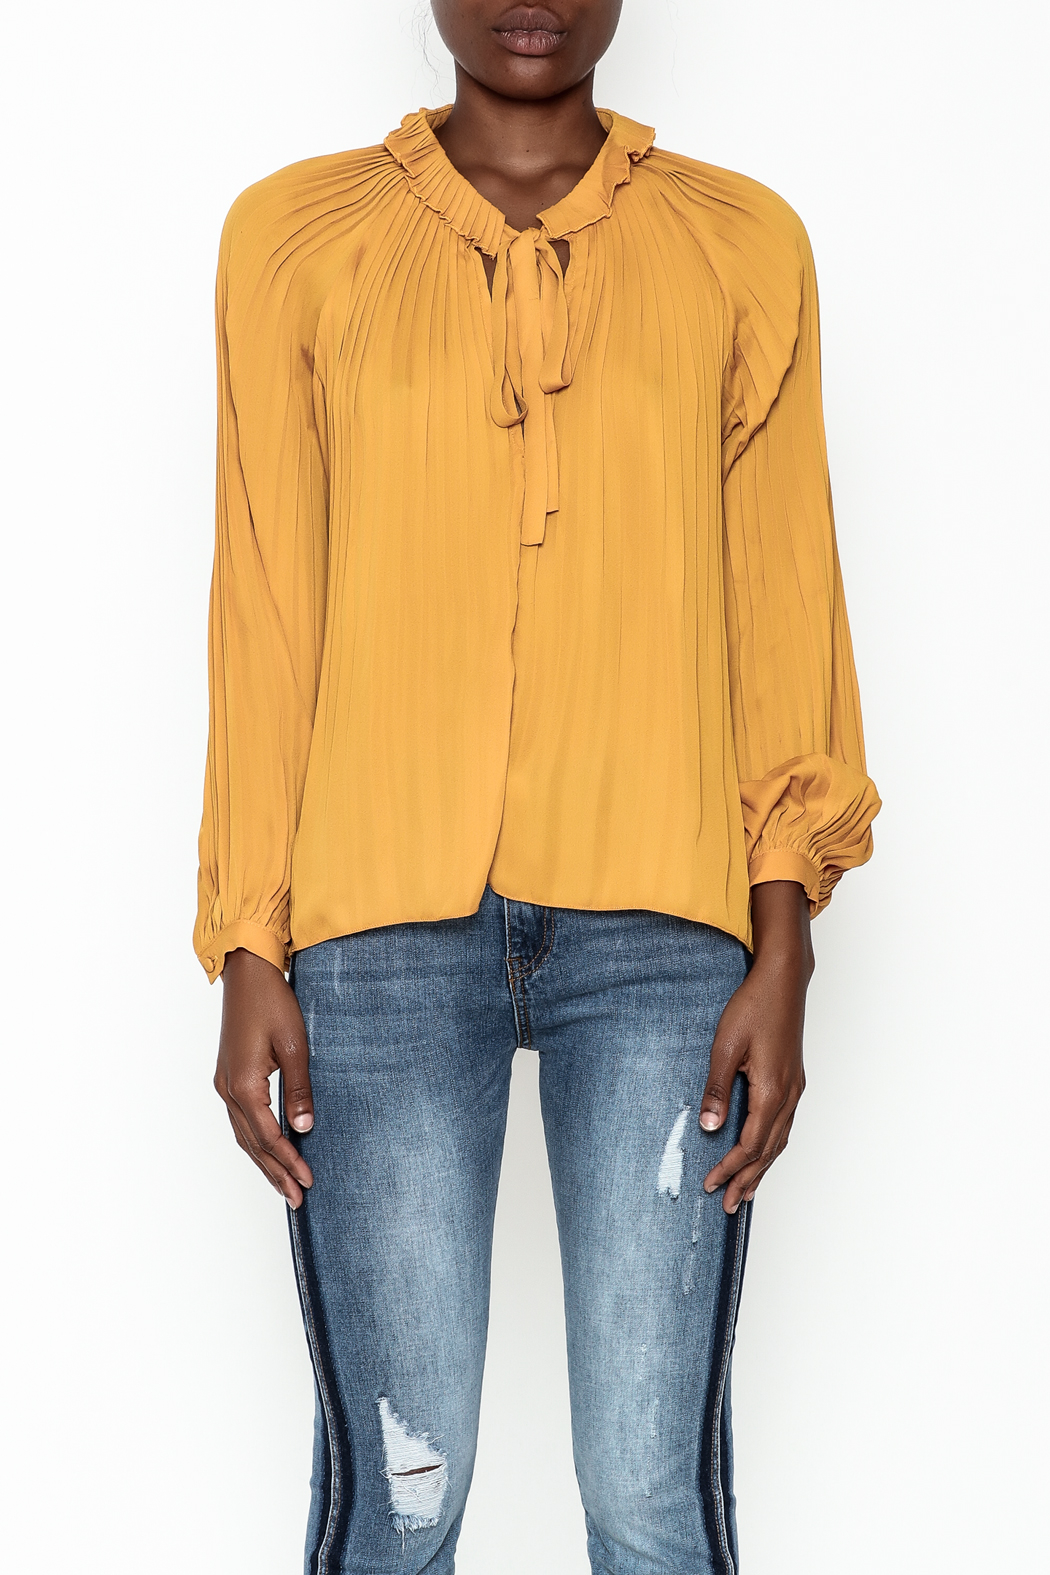 Lucy Paris Olivia Pleated Blouse - Front Full Image